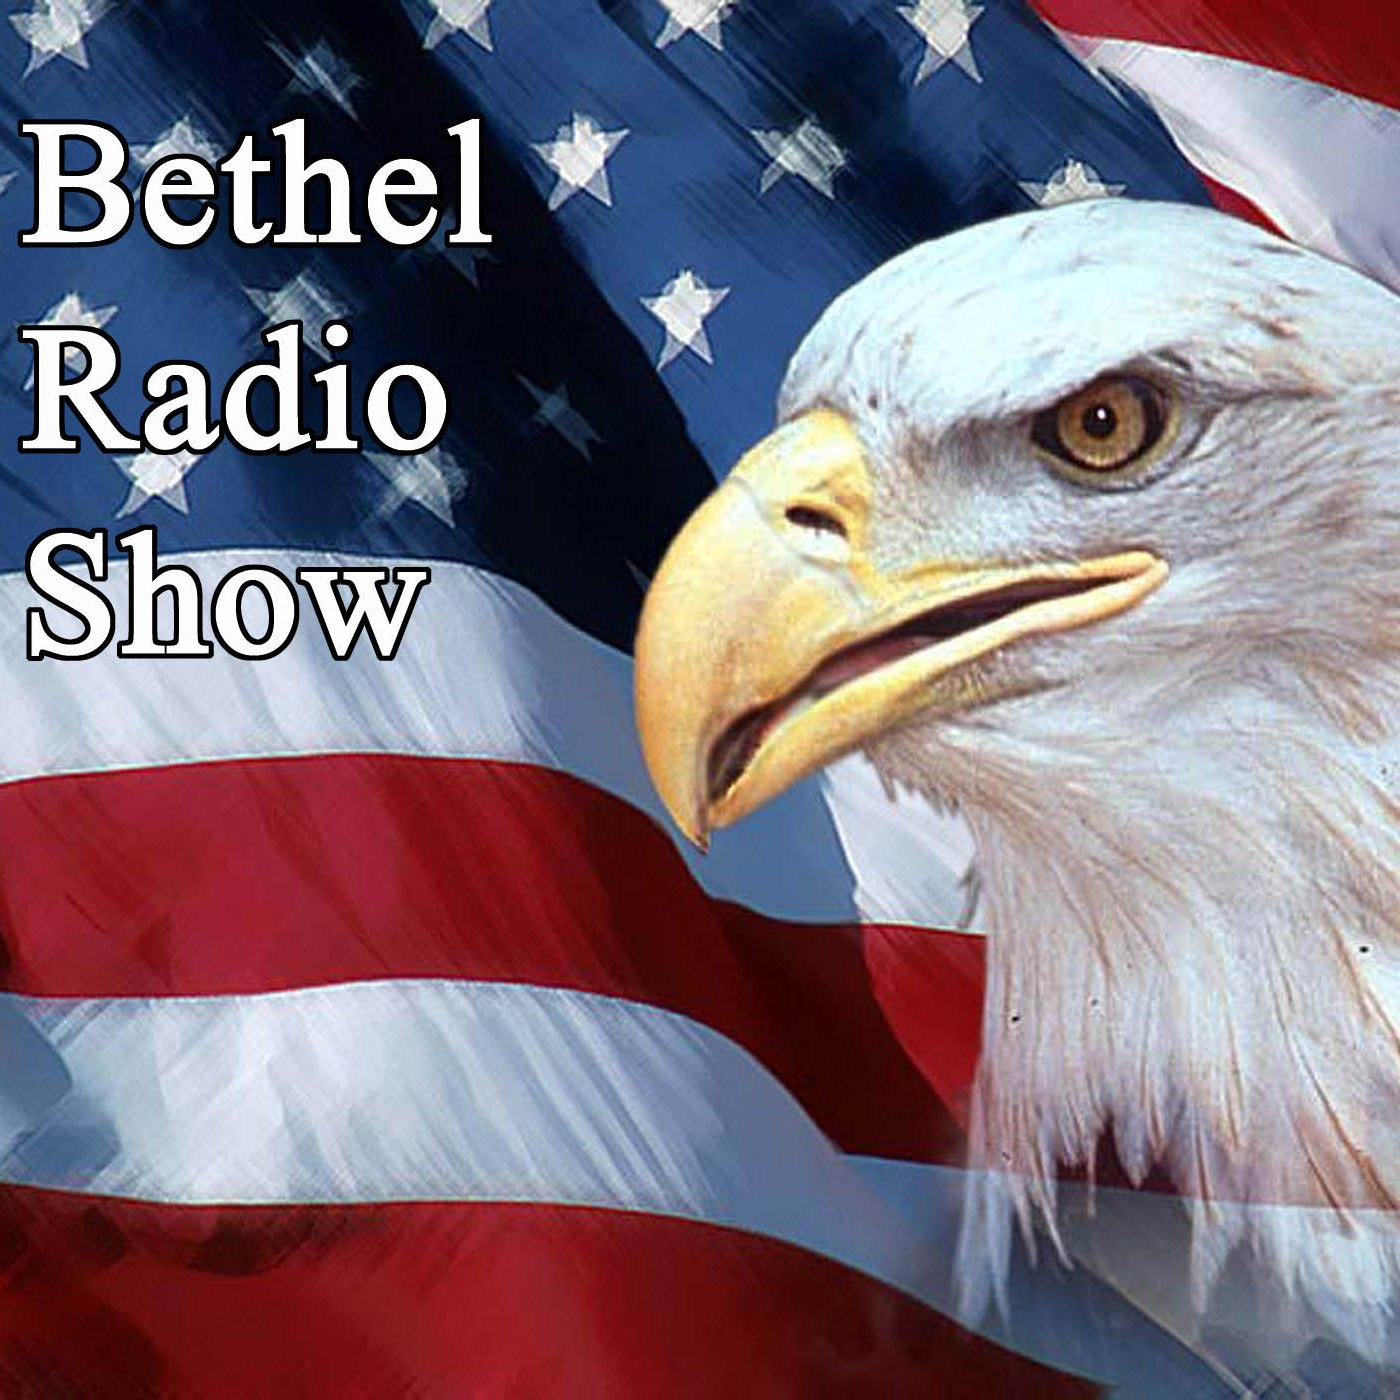 Bethel Radio Show – Bethel Baptist Church